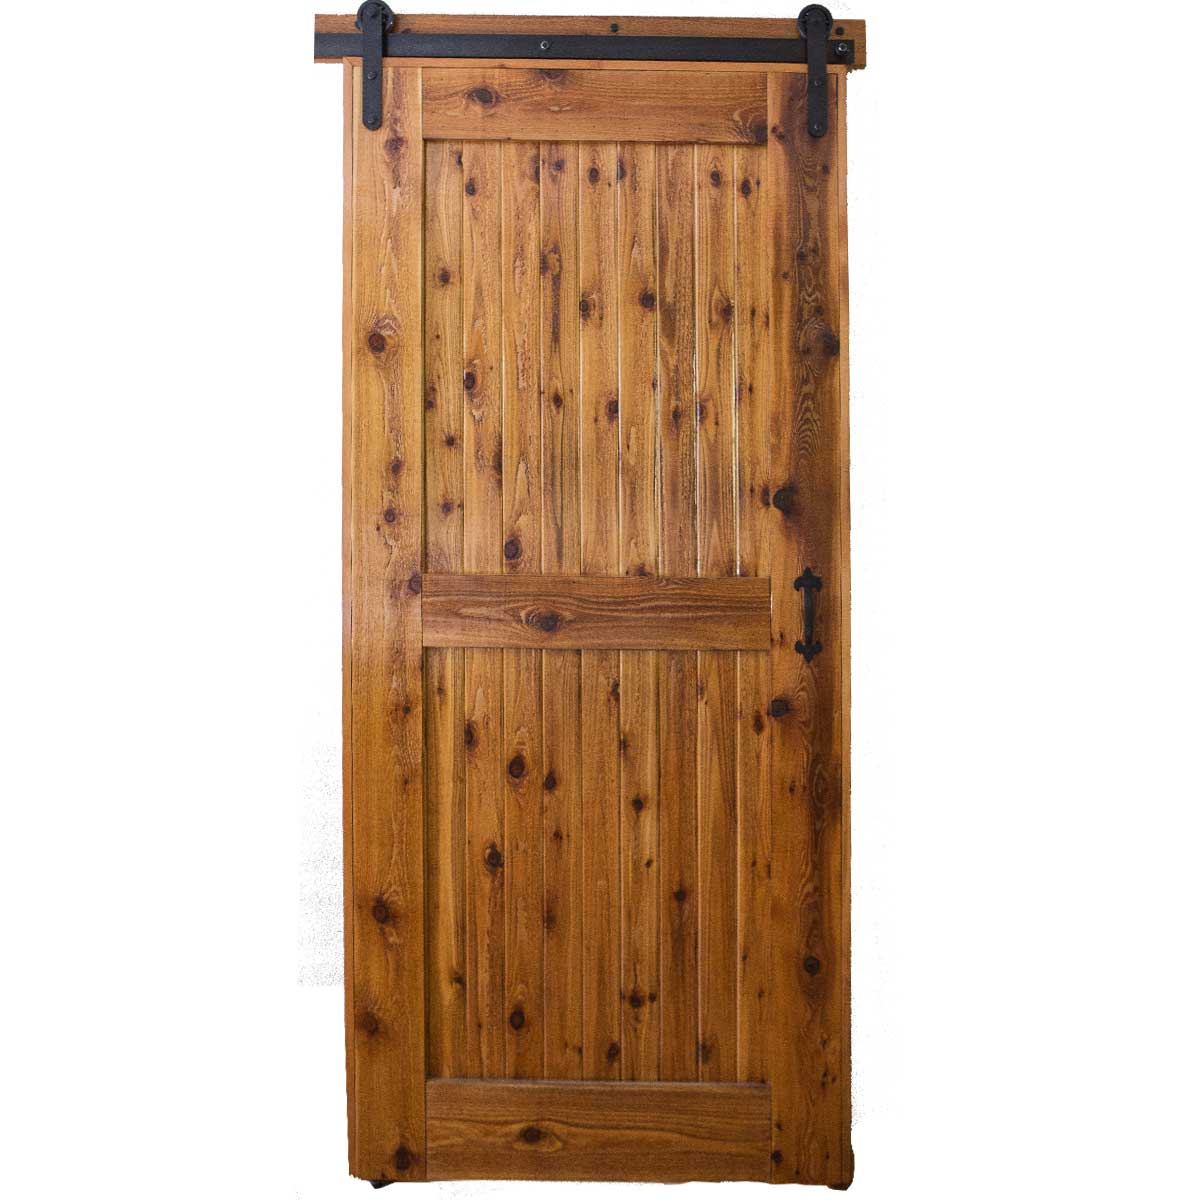 Portland barn door Custom